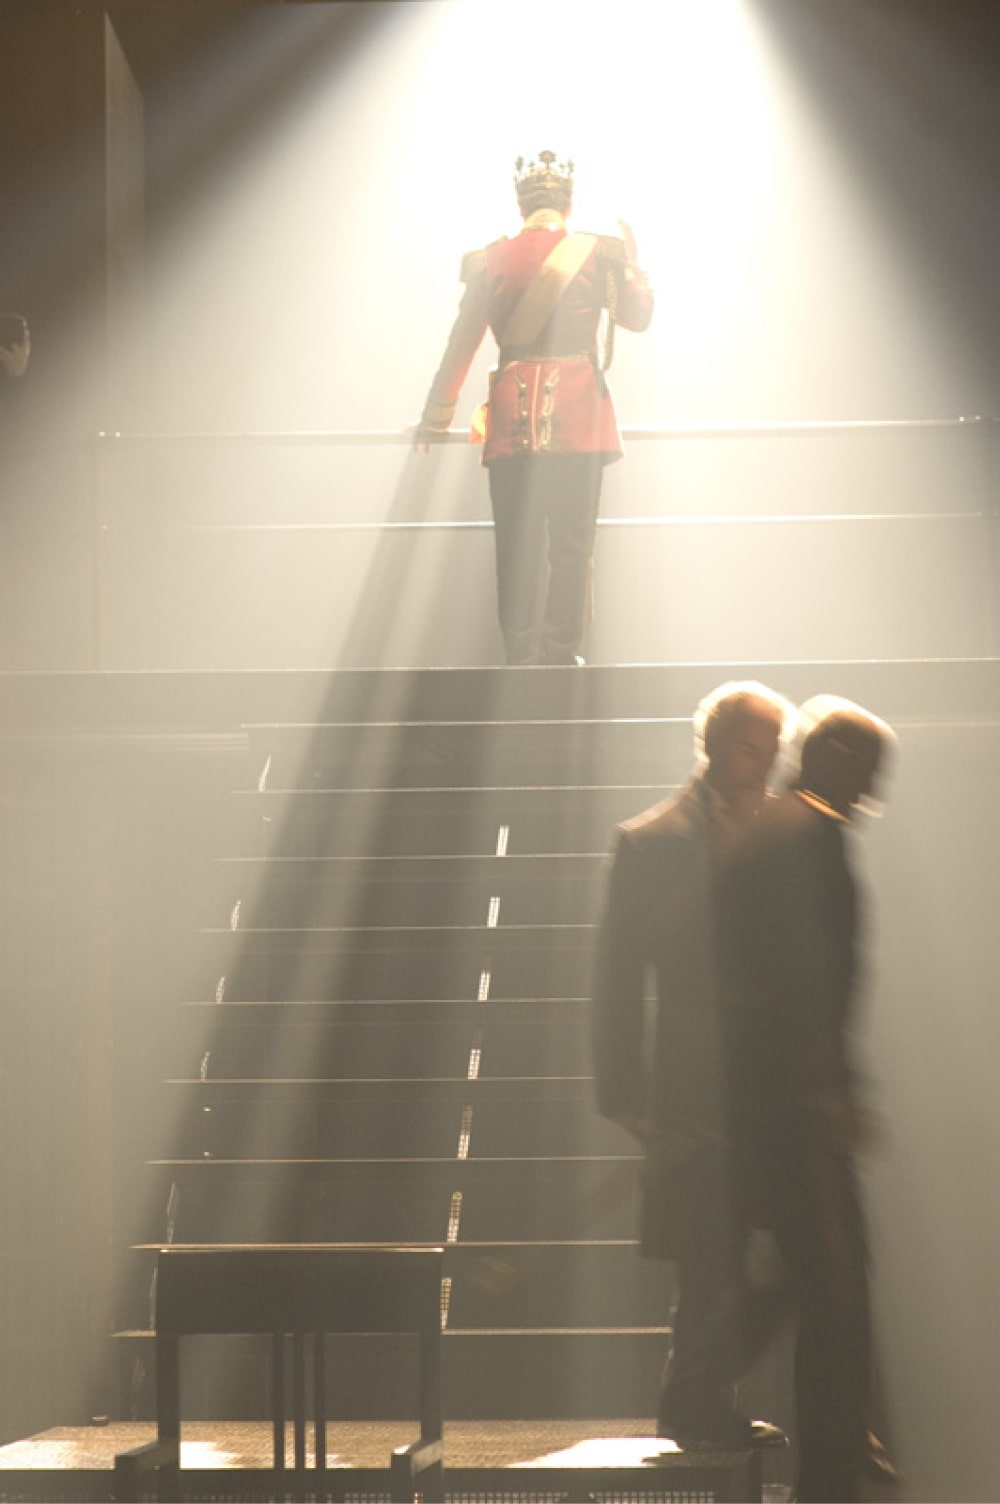 King stands facing away at top of stairs in shaft of strong back light.